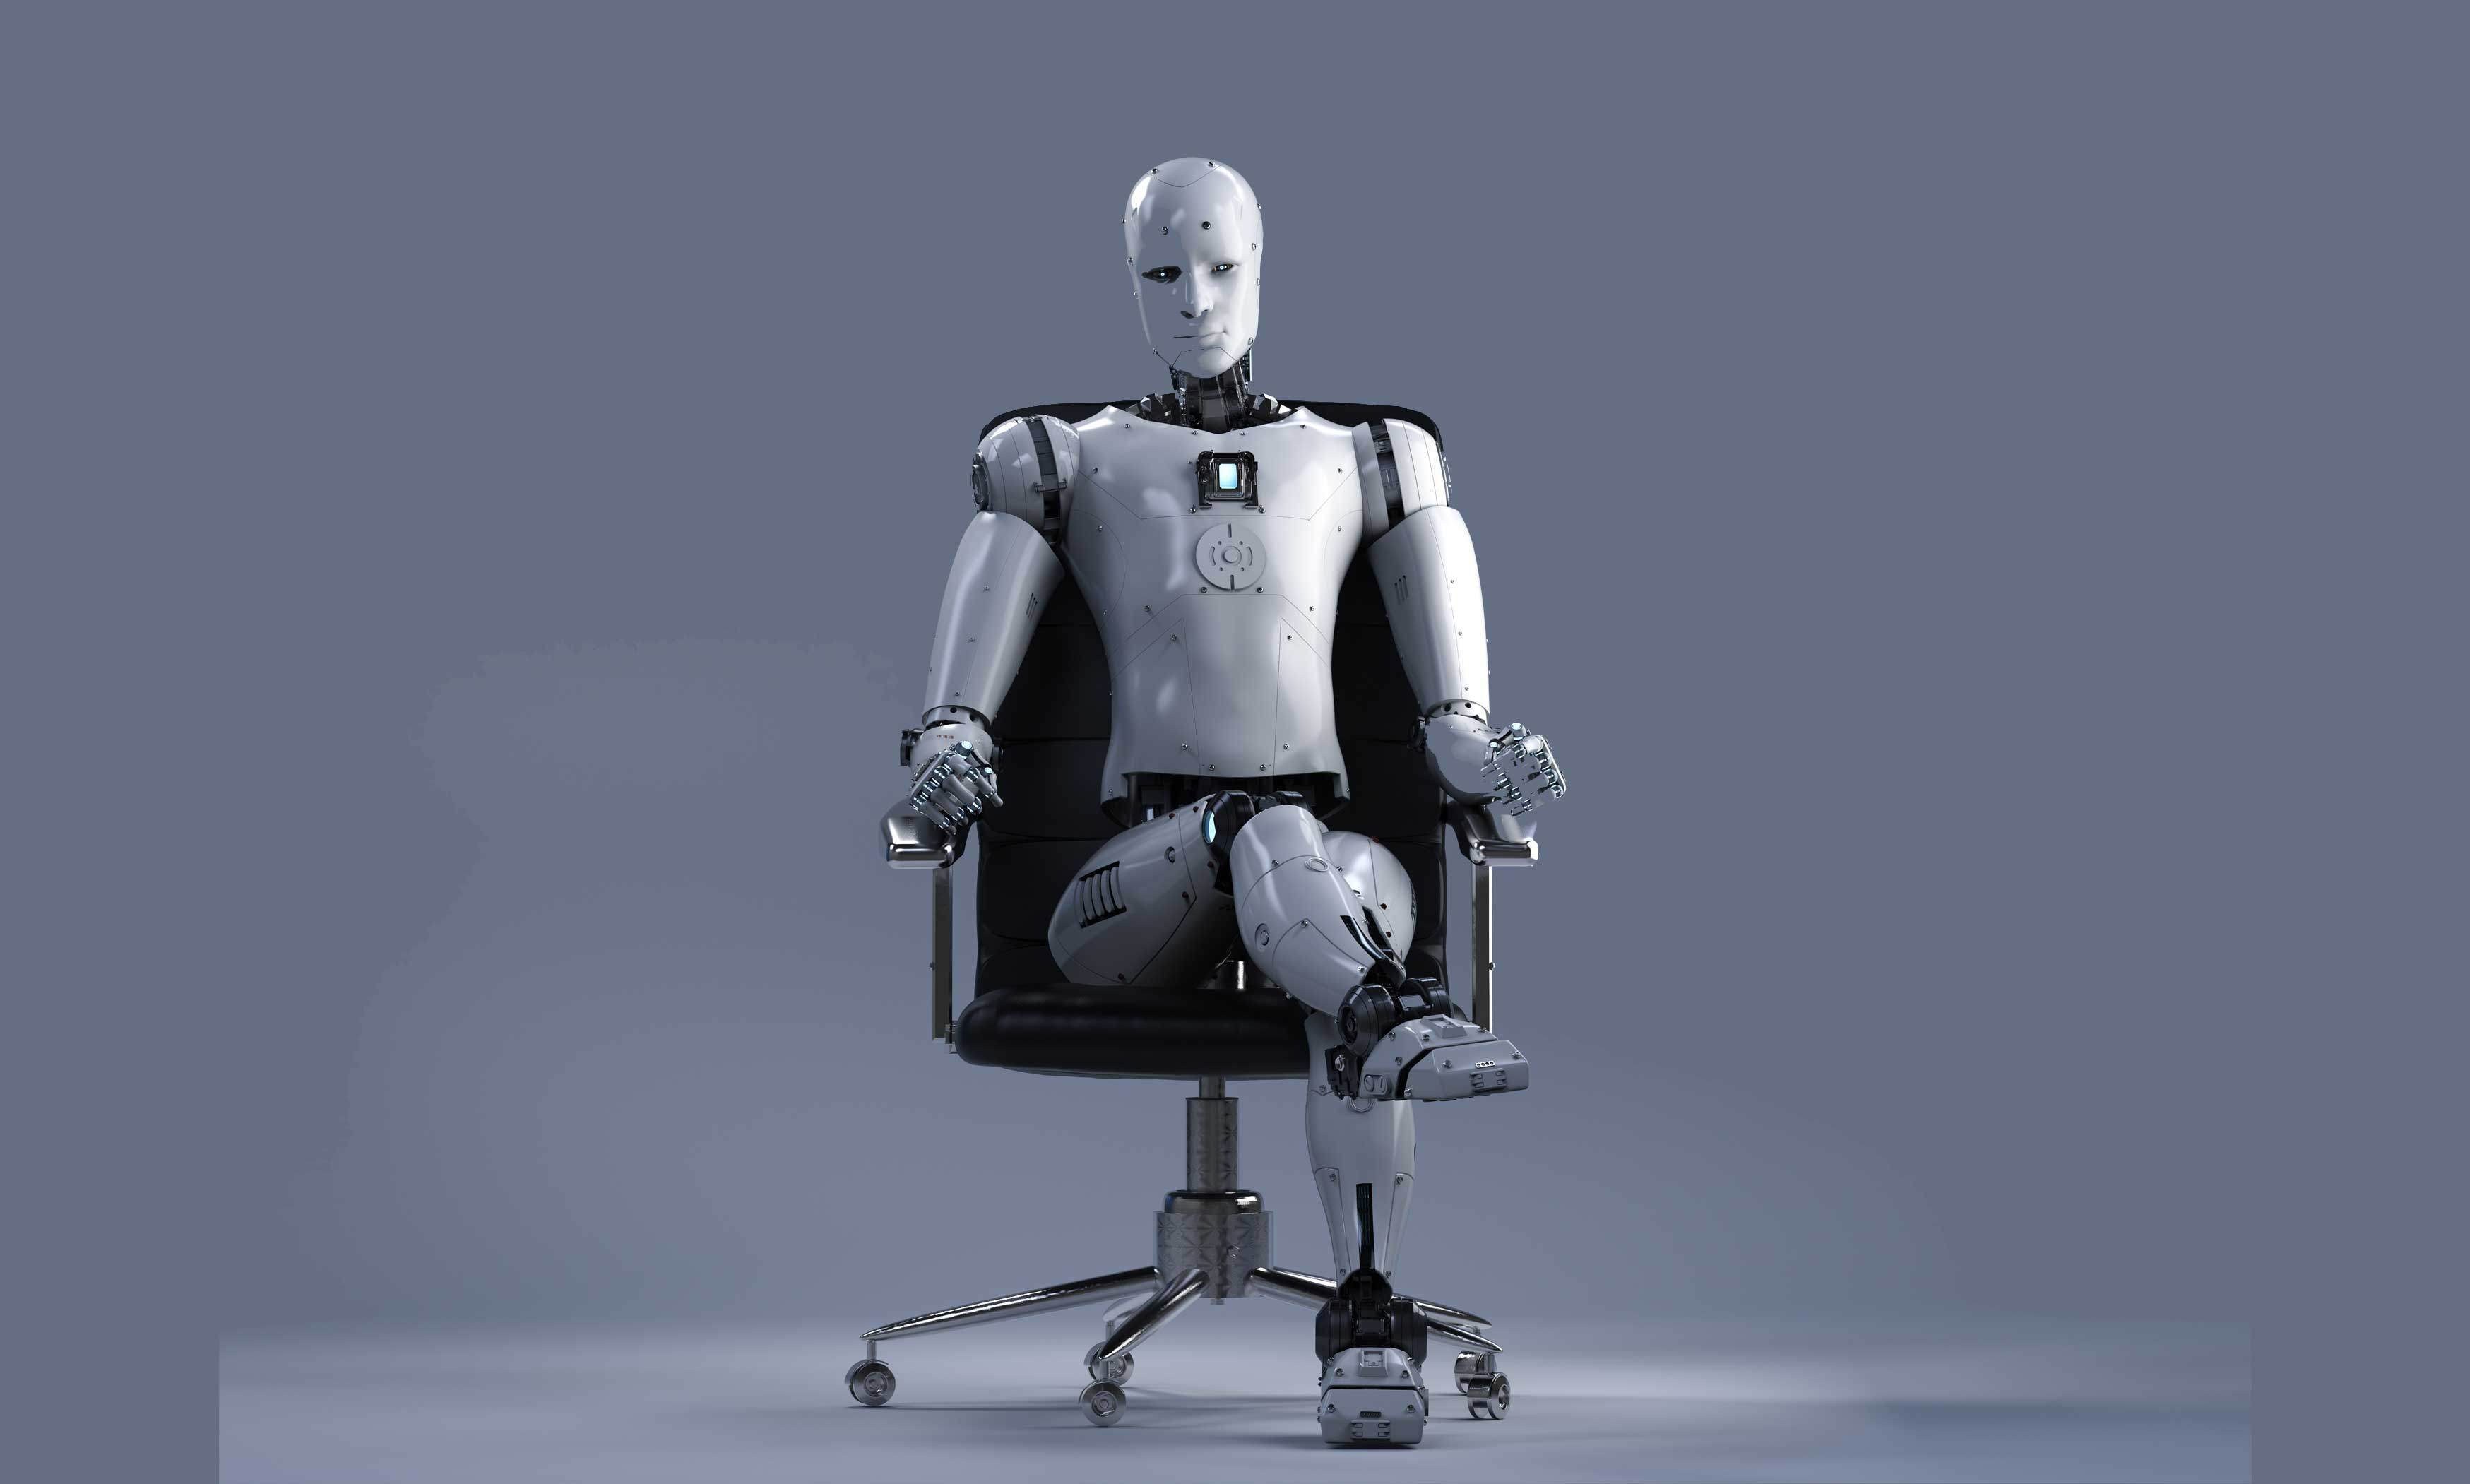 Government Affairs Directors Institute: Robots in Real Estate